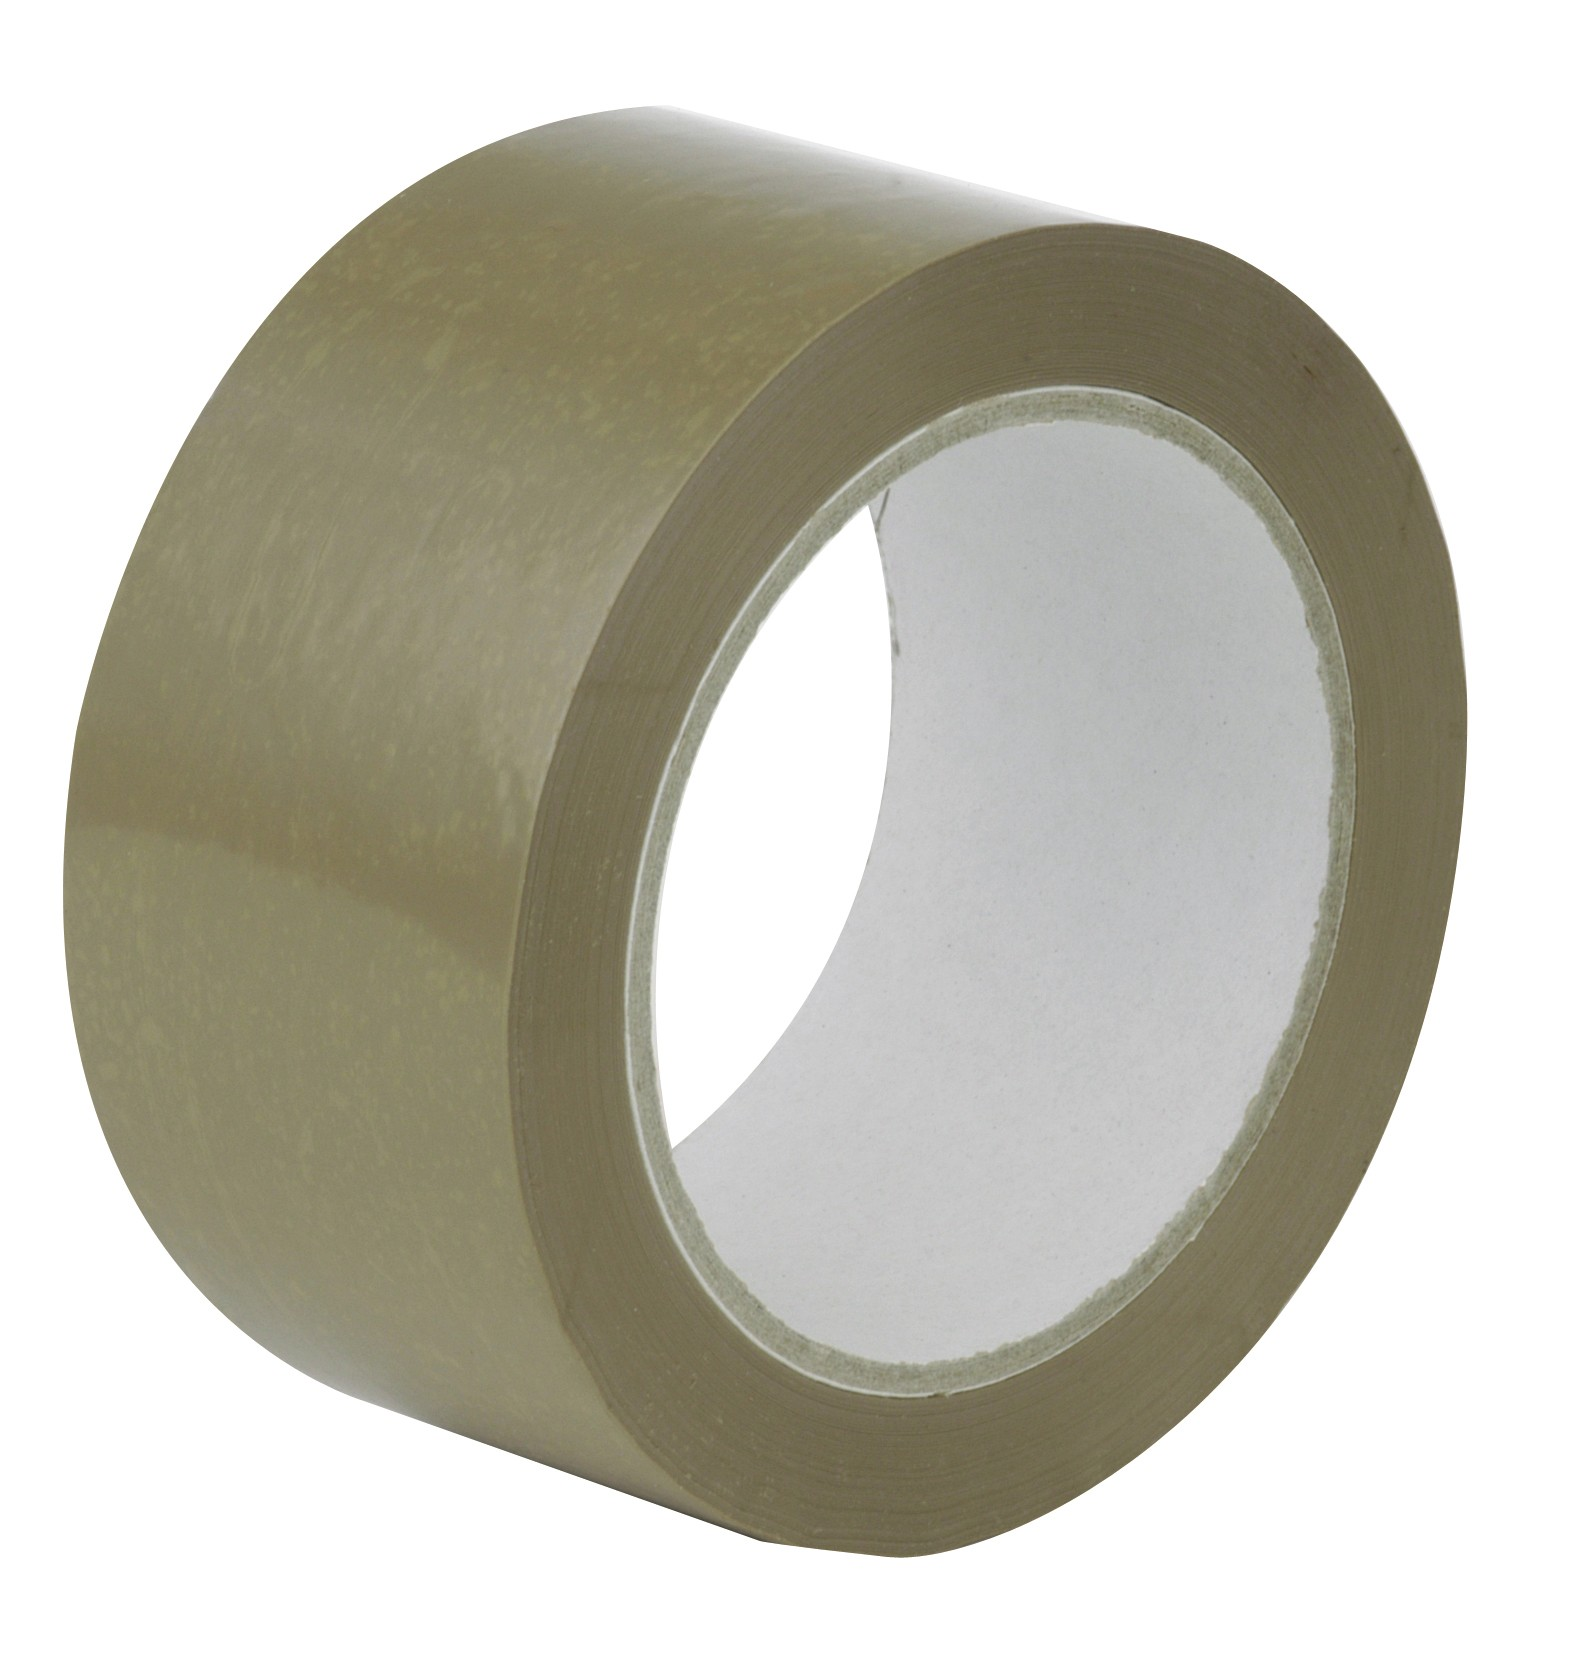 Clear-Packing-Tape-Largec3-1.jpg